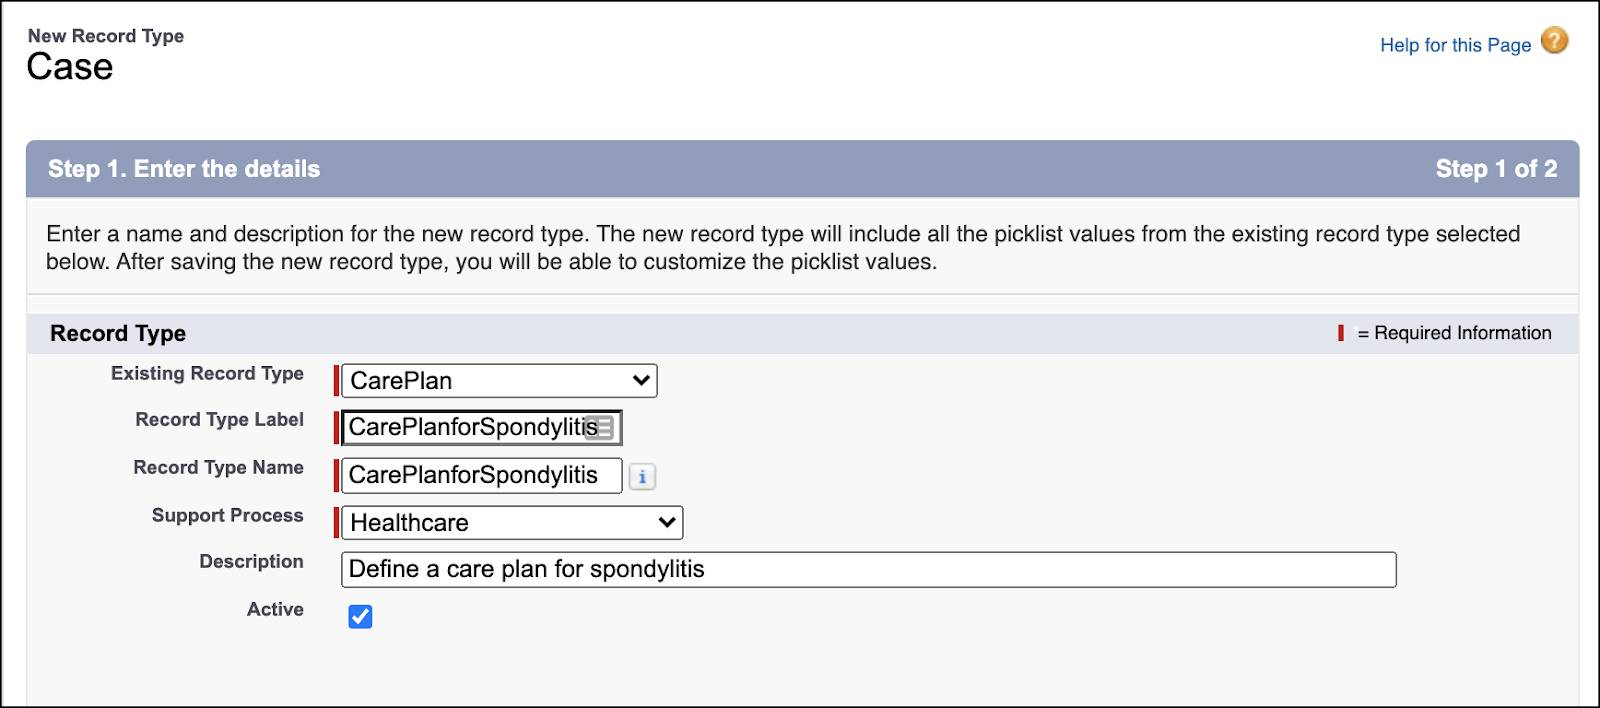 Creating a new record type for a care plan for spondylitis.